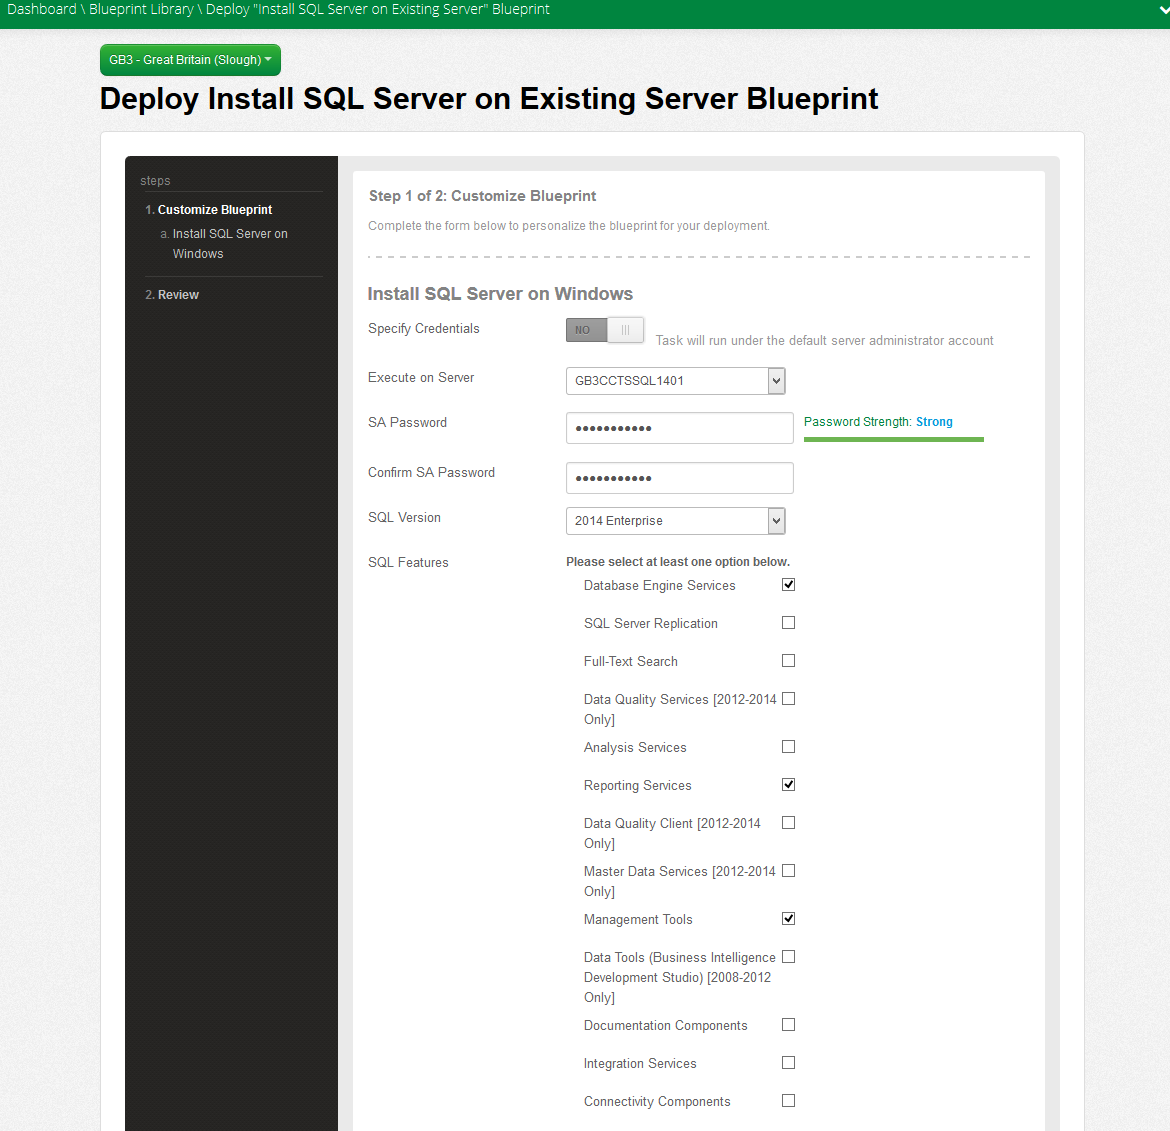 Deploy Install SQL Server on Existing Server Blueprint